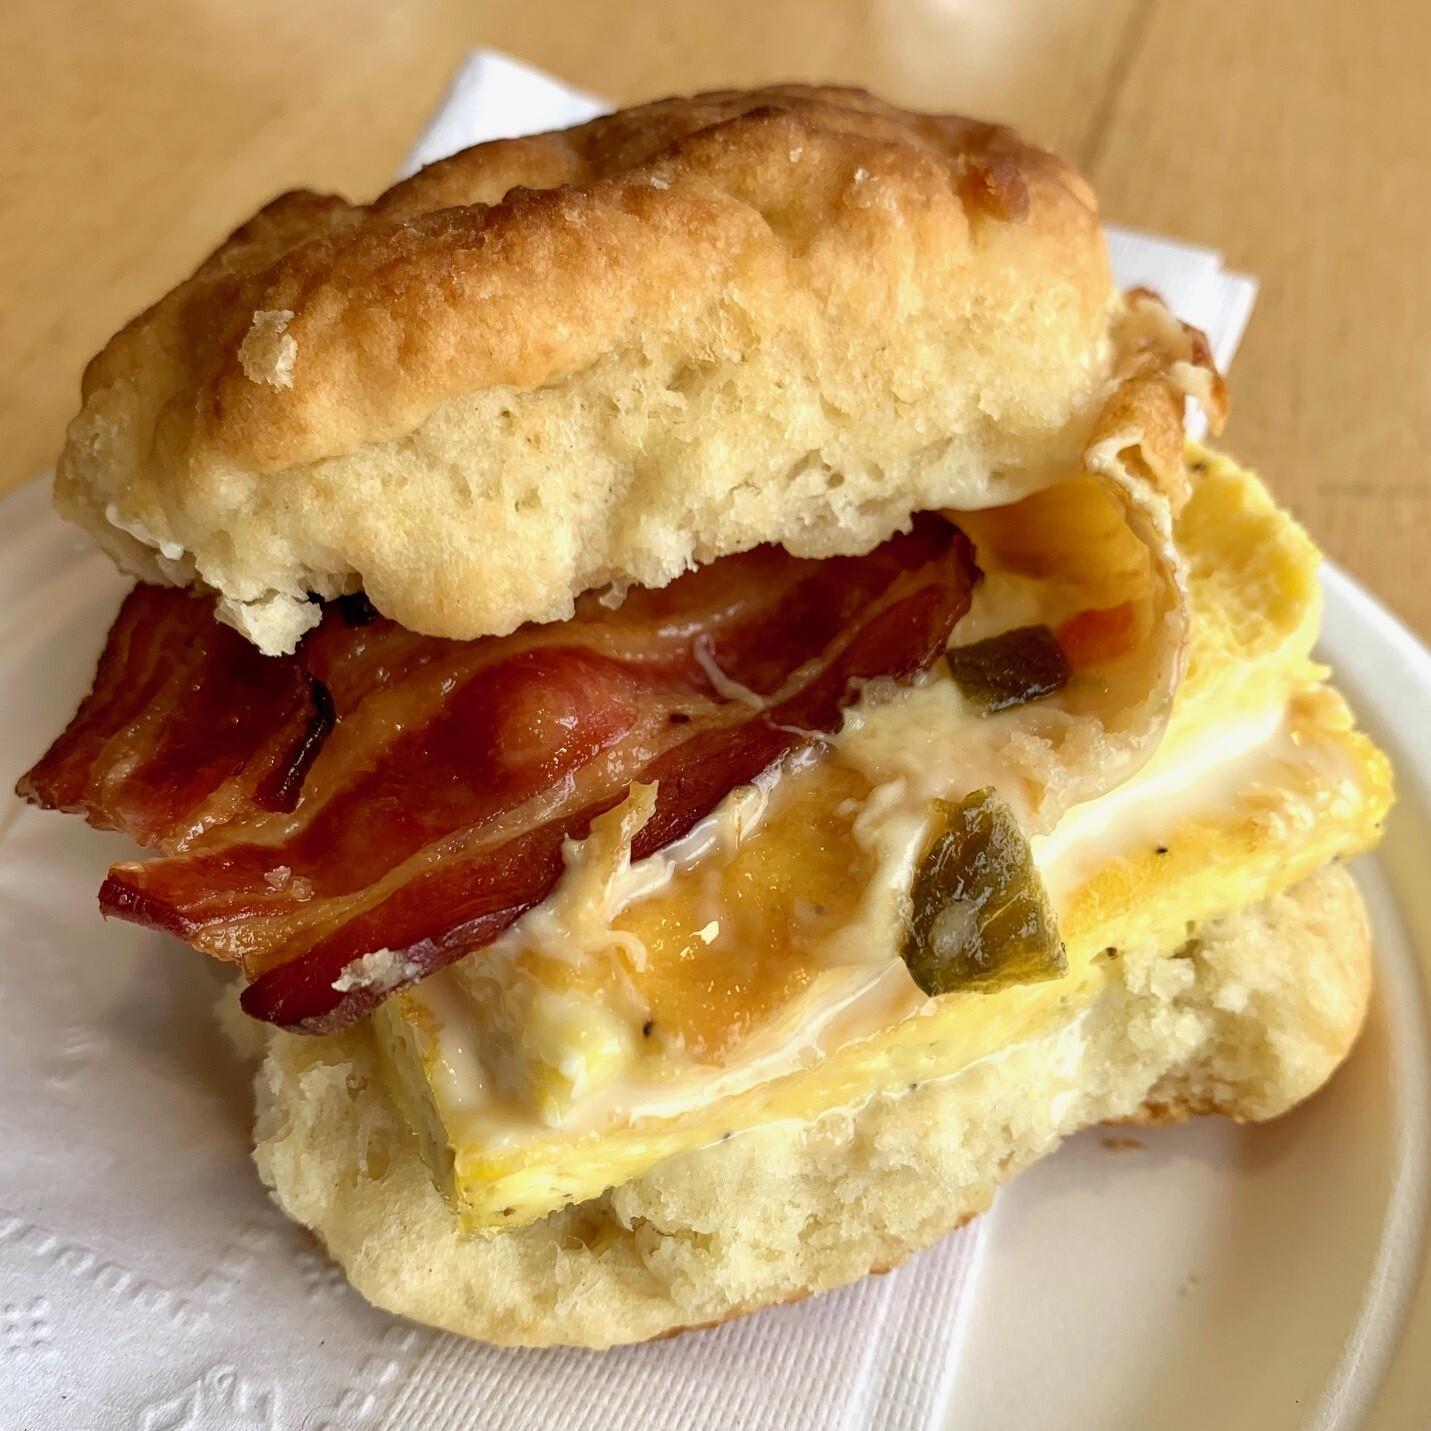 Breakfast sandwich / bacon and egg